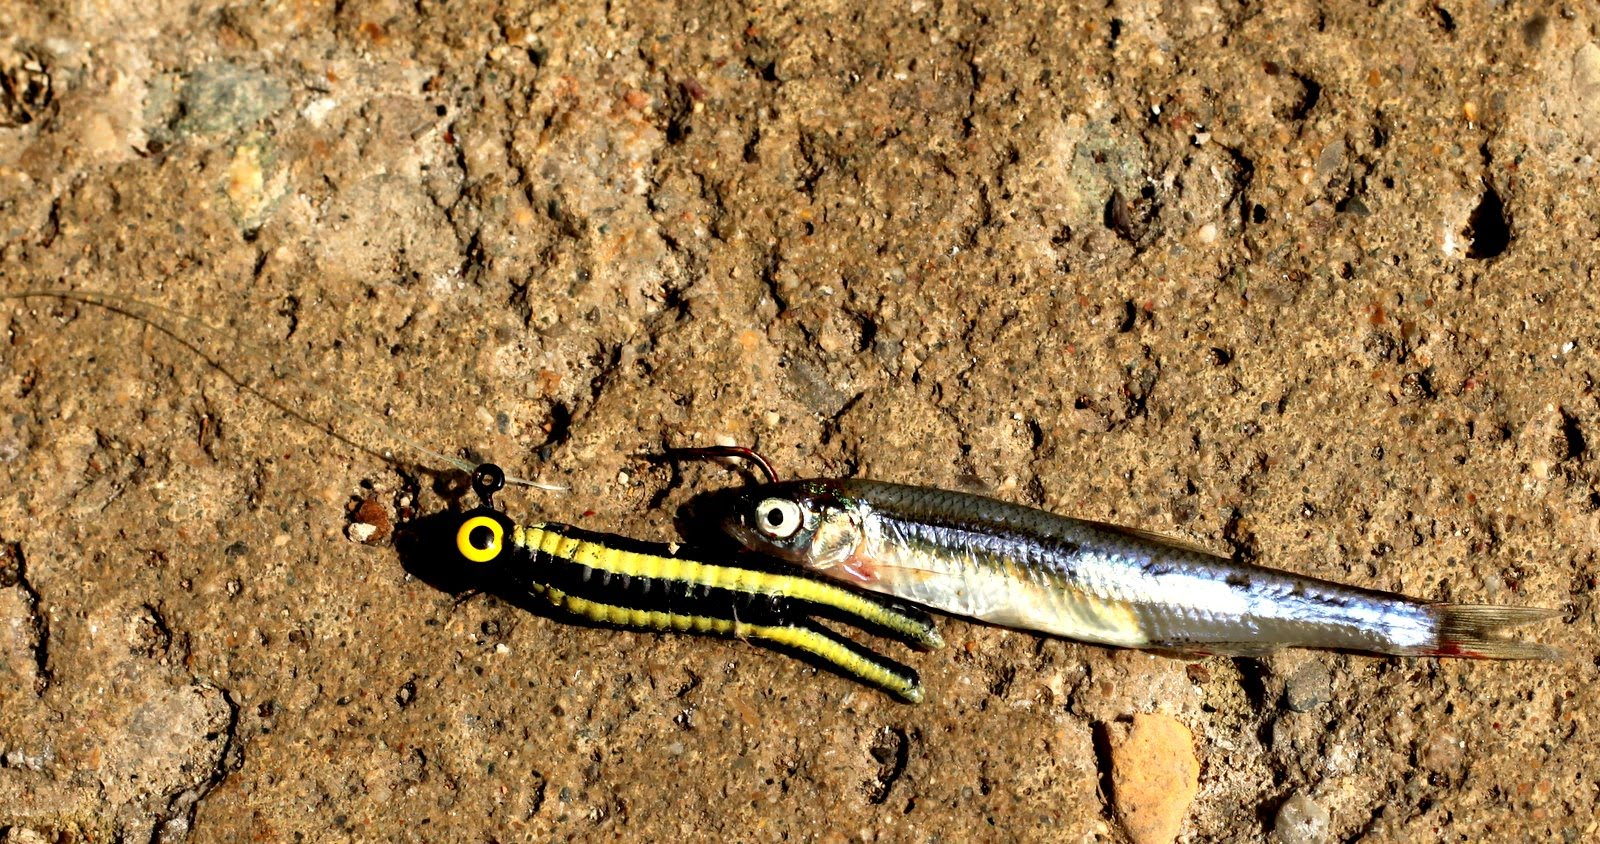 Exeter lane diaries crappie minnows for Crappie fishing with minnows